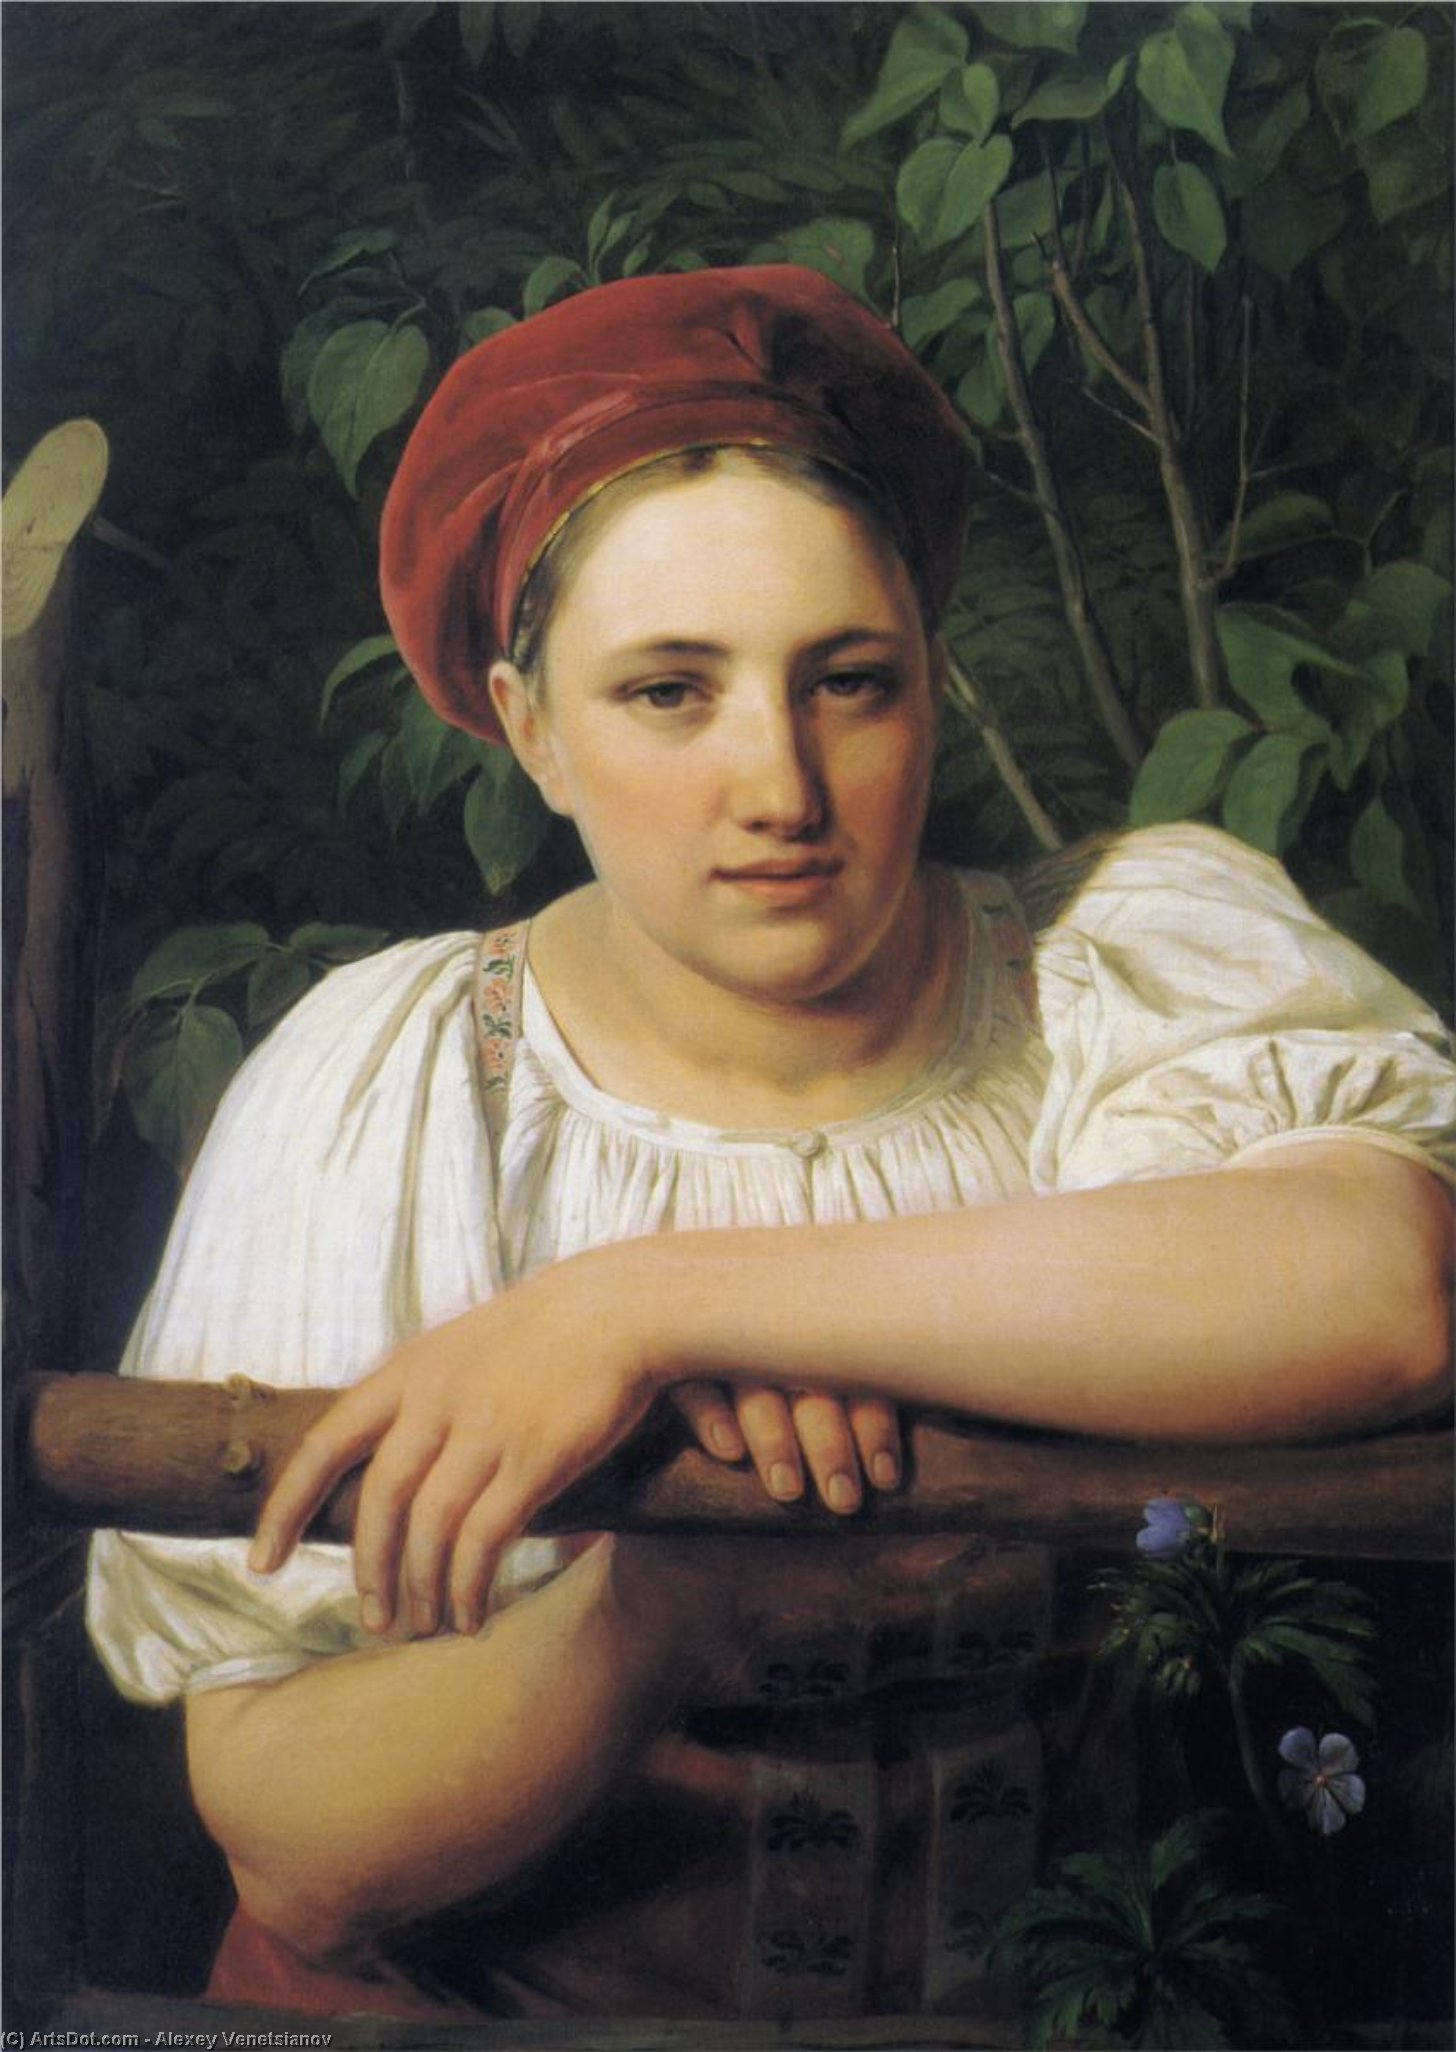 A Peasant girl from Tver, 1840 by Alexey Venetsianov (1780-1847, Russia)